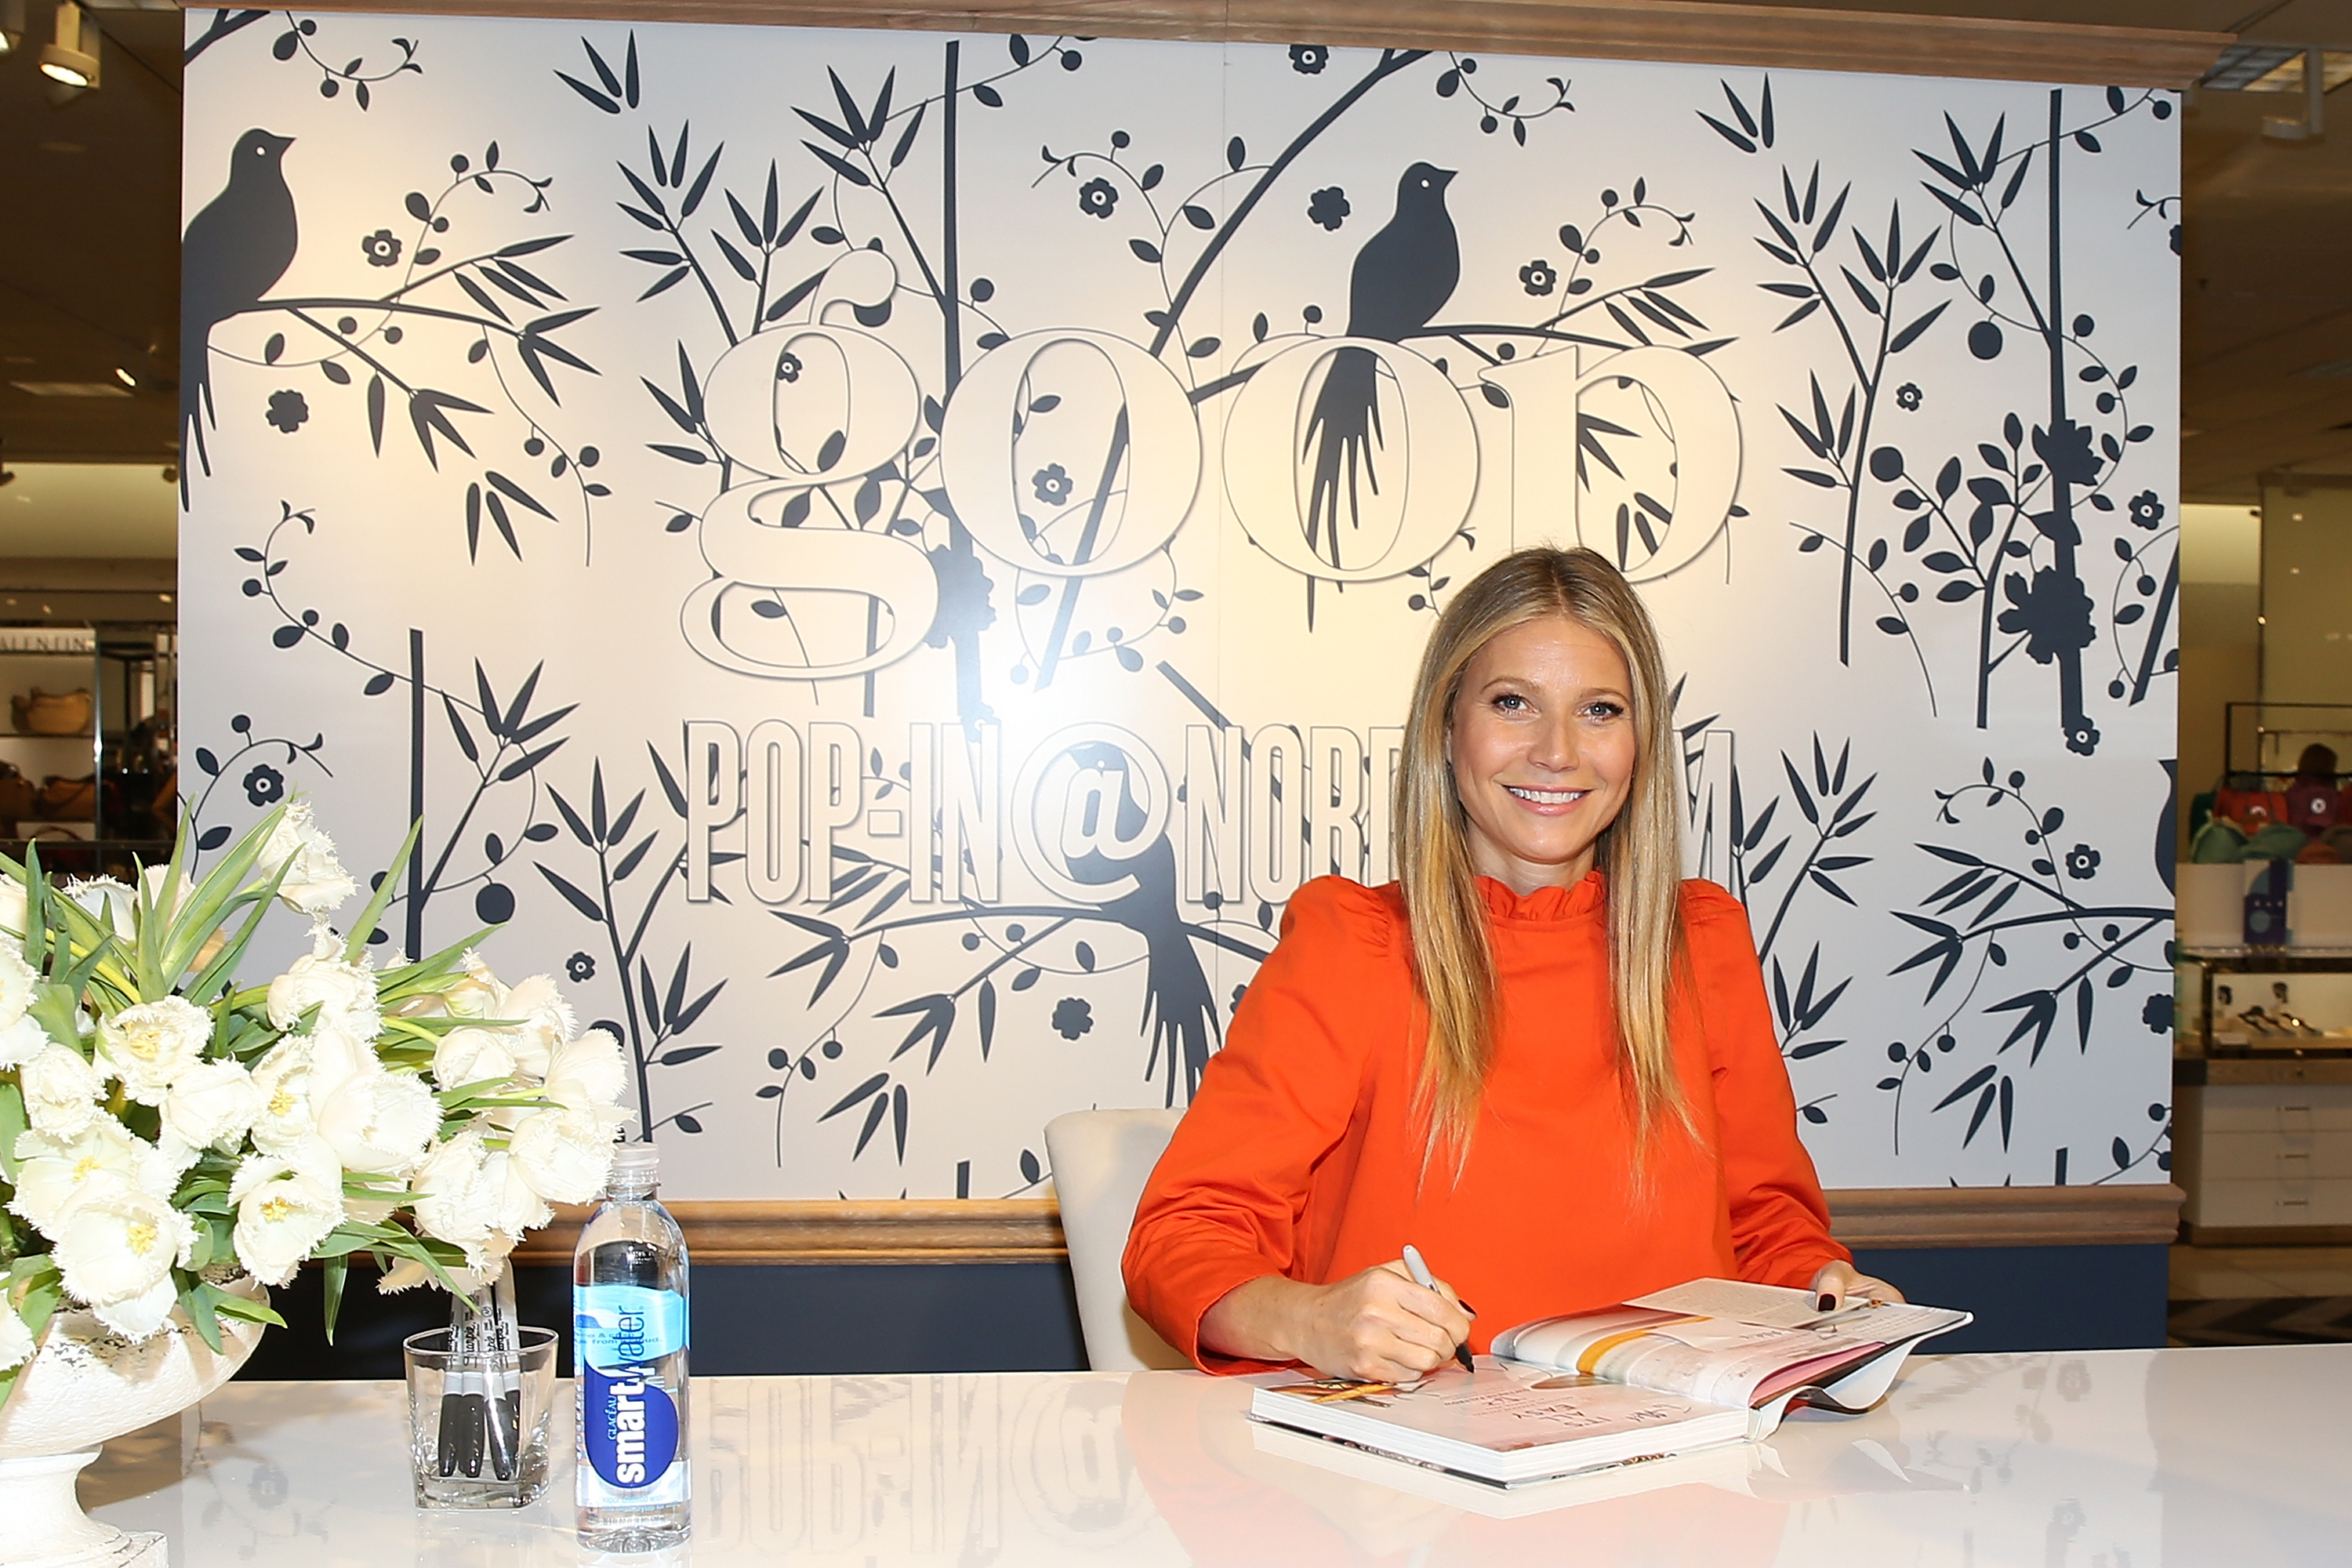 Gwyneth Paltrow attends book signing at goop-pop-in@Nordstrom on June 8, 2017 in Los Angeles, California.